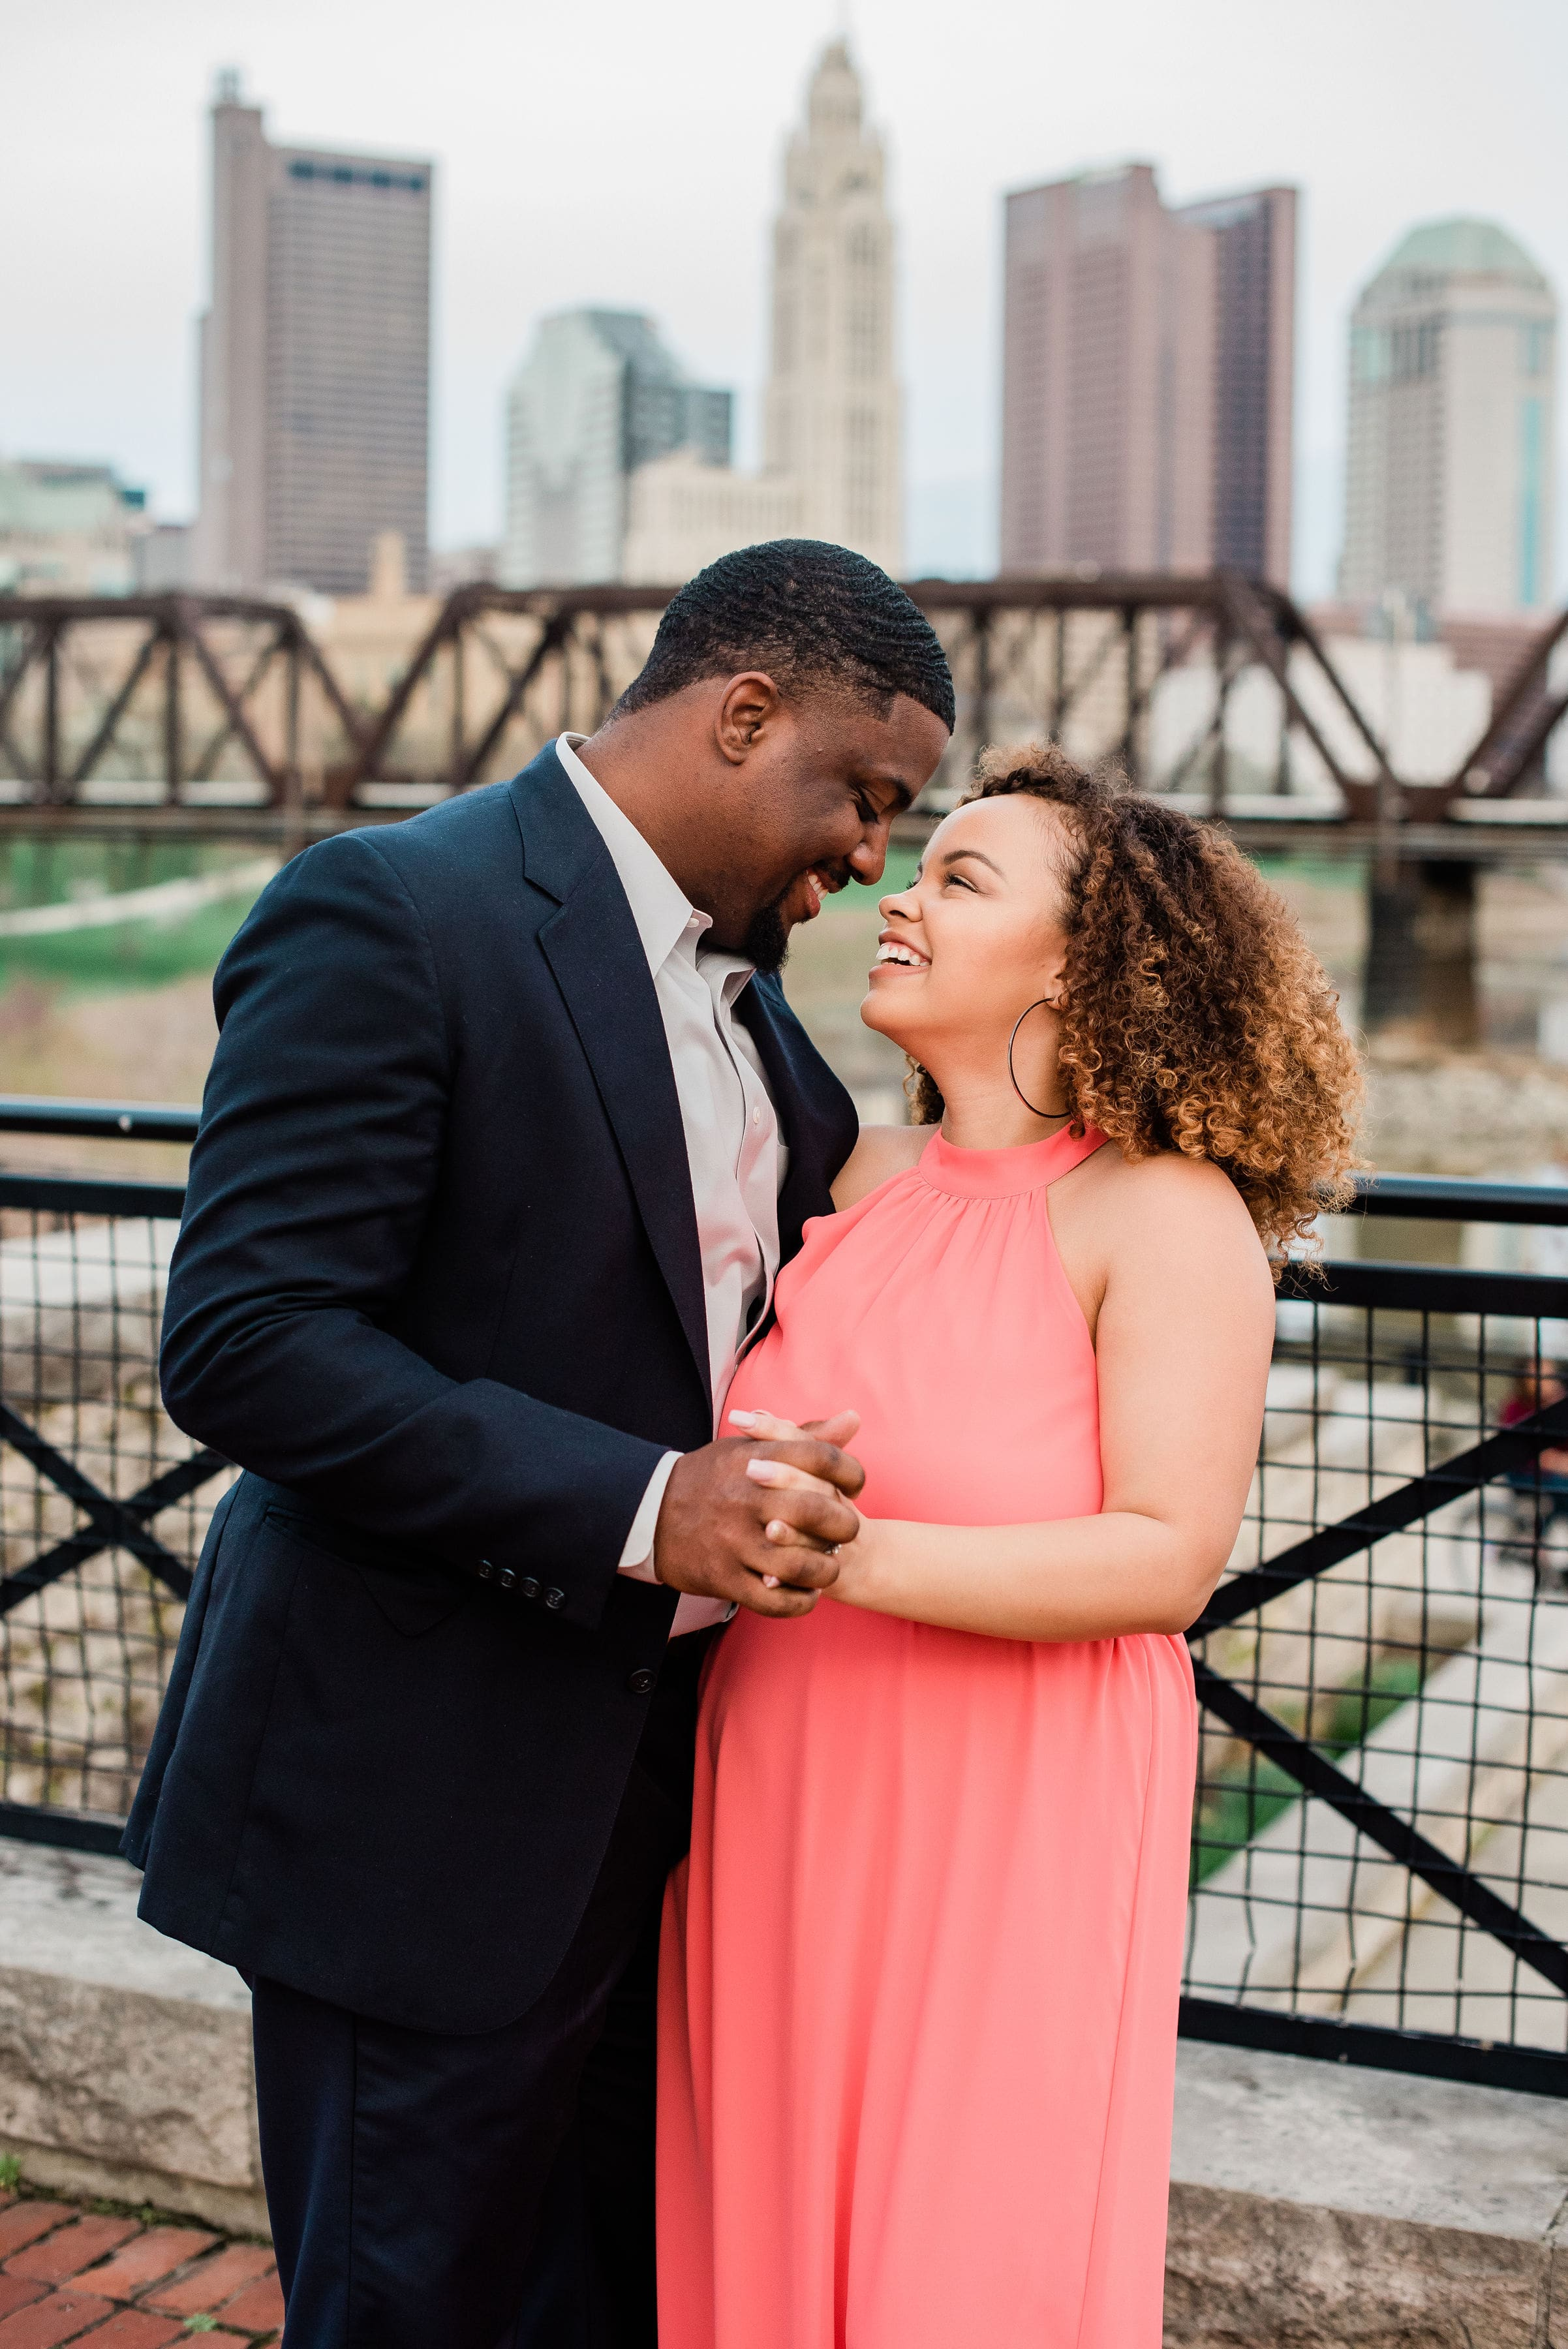 Elena Long featured in engagement photos in Summertime coral chiffon